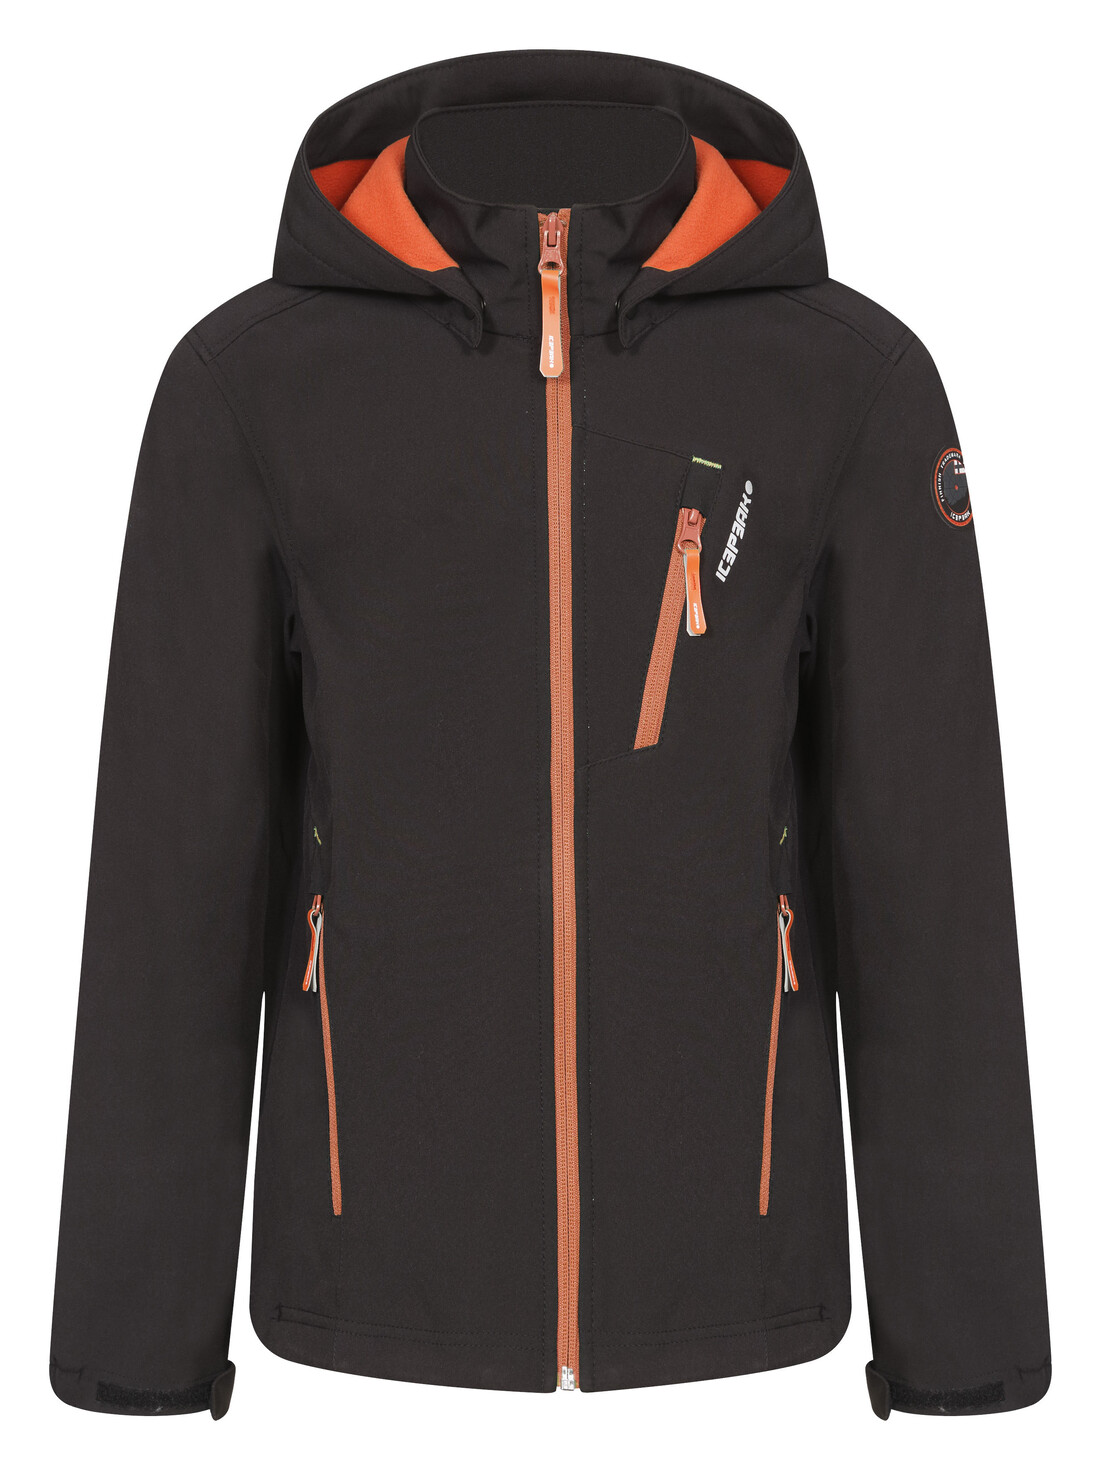 Icepeak Tuukka Softshell Jacket Boys black 176 kinder schwarz 2015